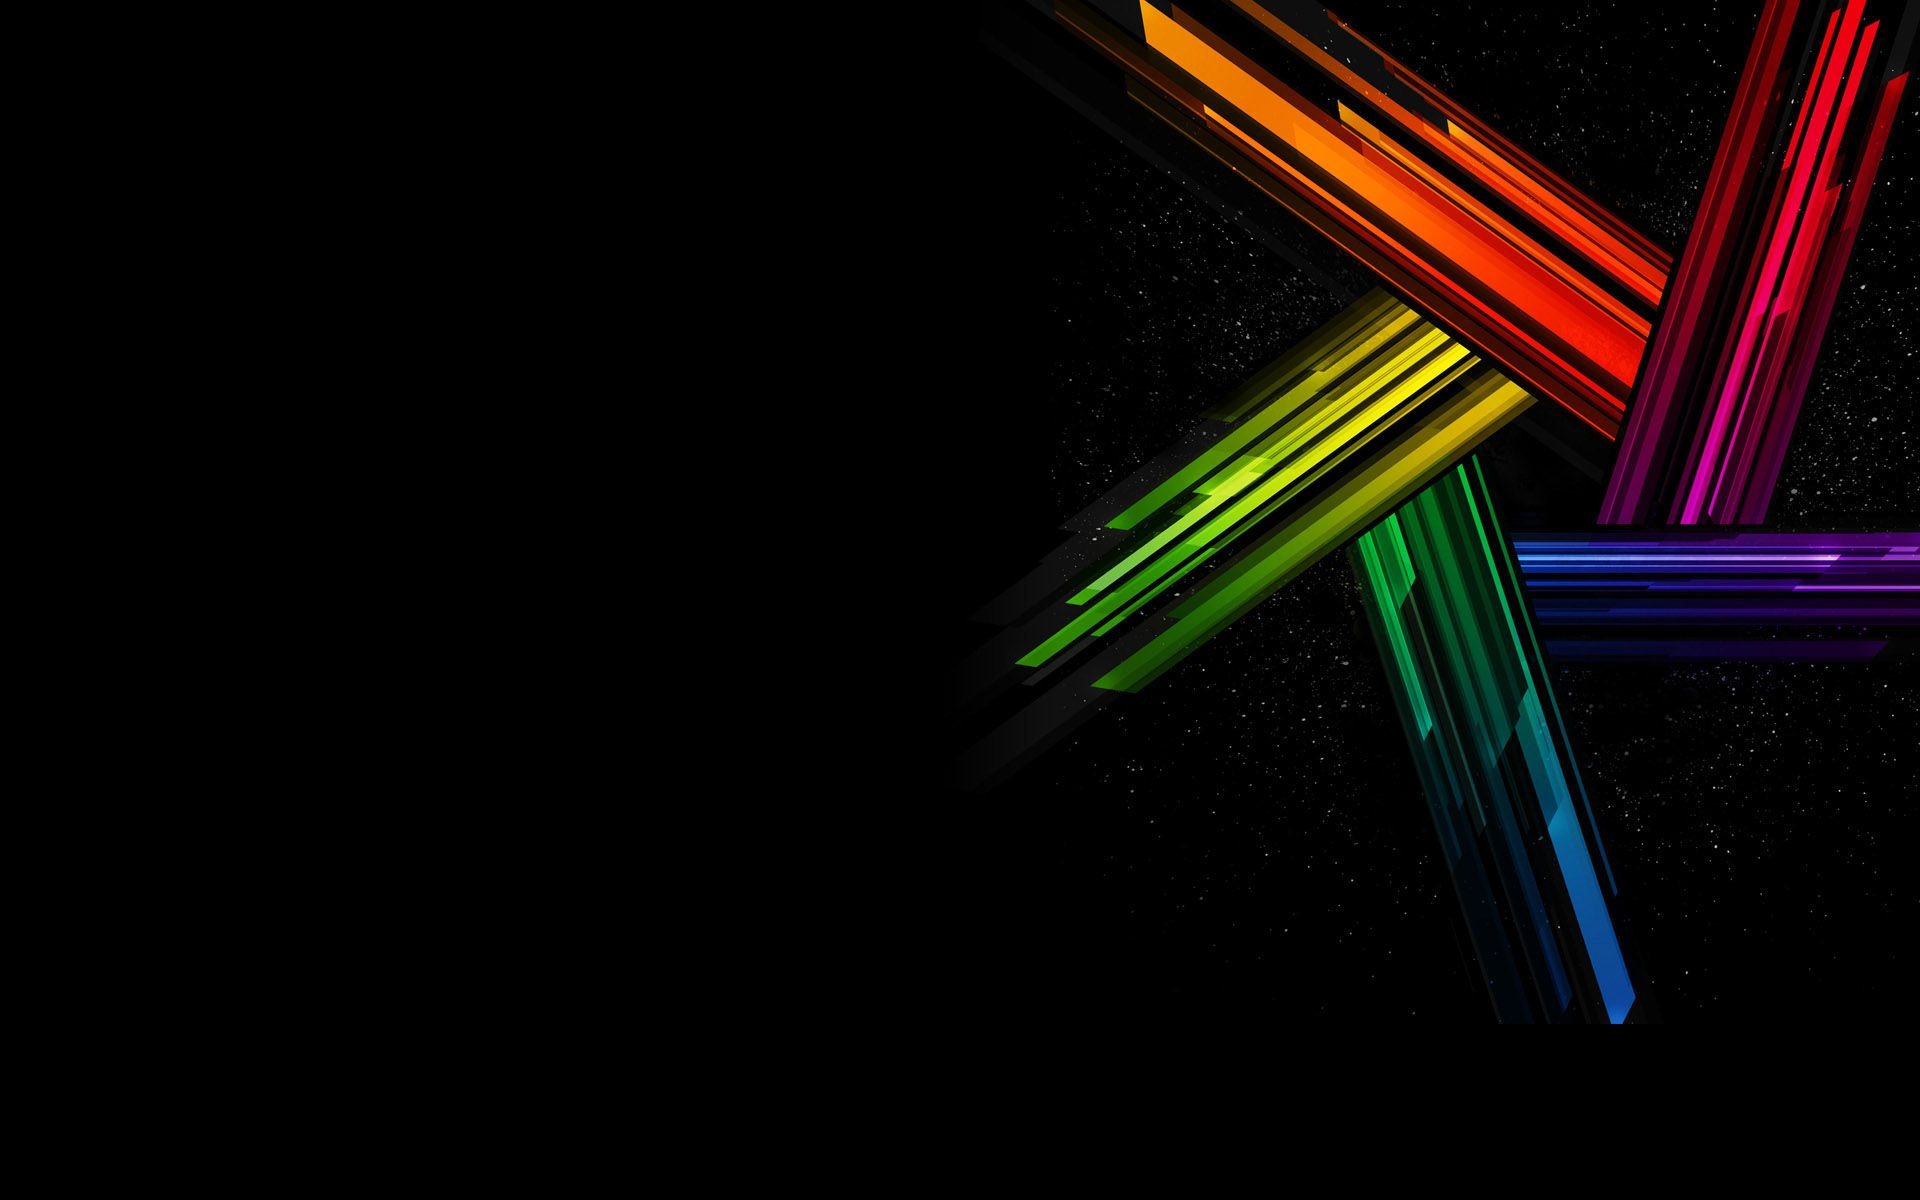 Rainbow Star Black Background With Images Background Hd